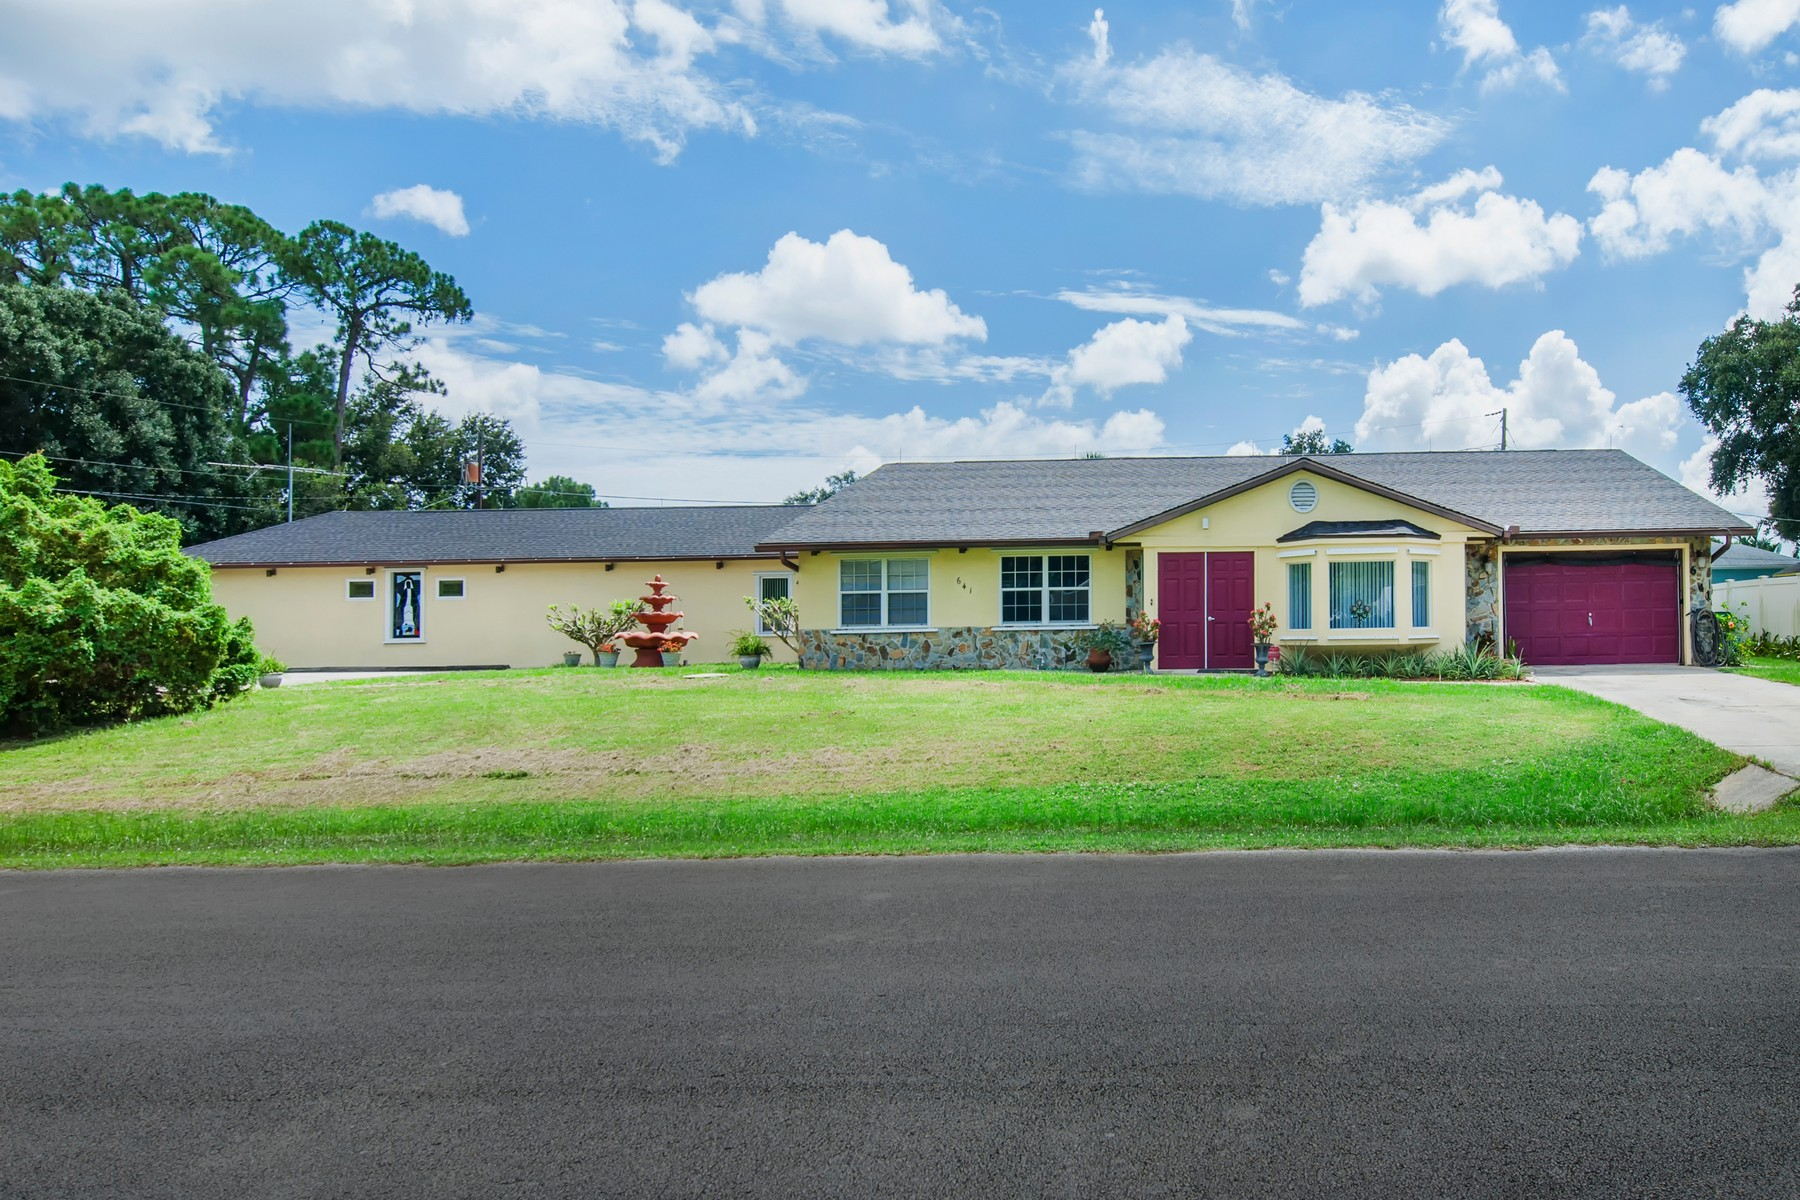 Single Family Homes for Sale at Unique Home Zoned For Many Possibilities 641 Braddock Street Sebastian, Florida 32958 United States